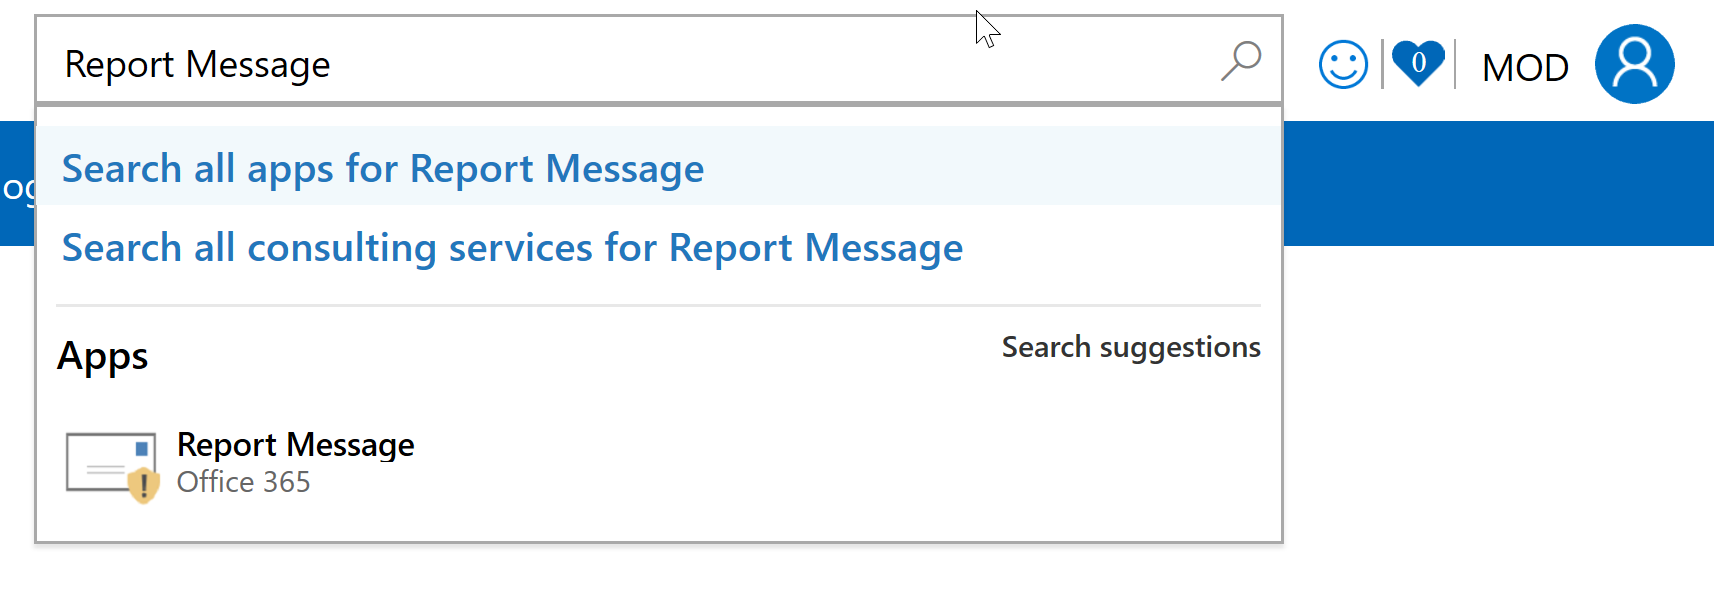 Search for Report Message